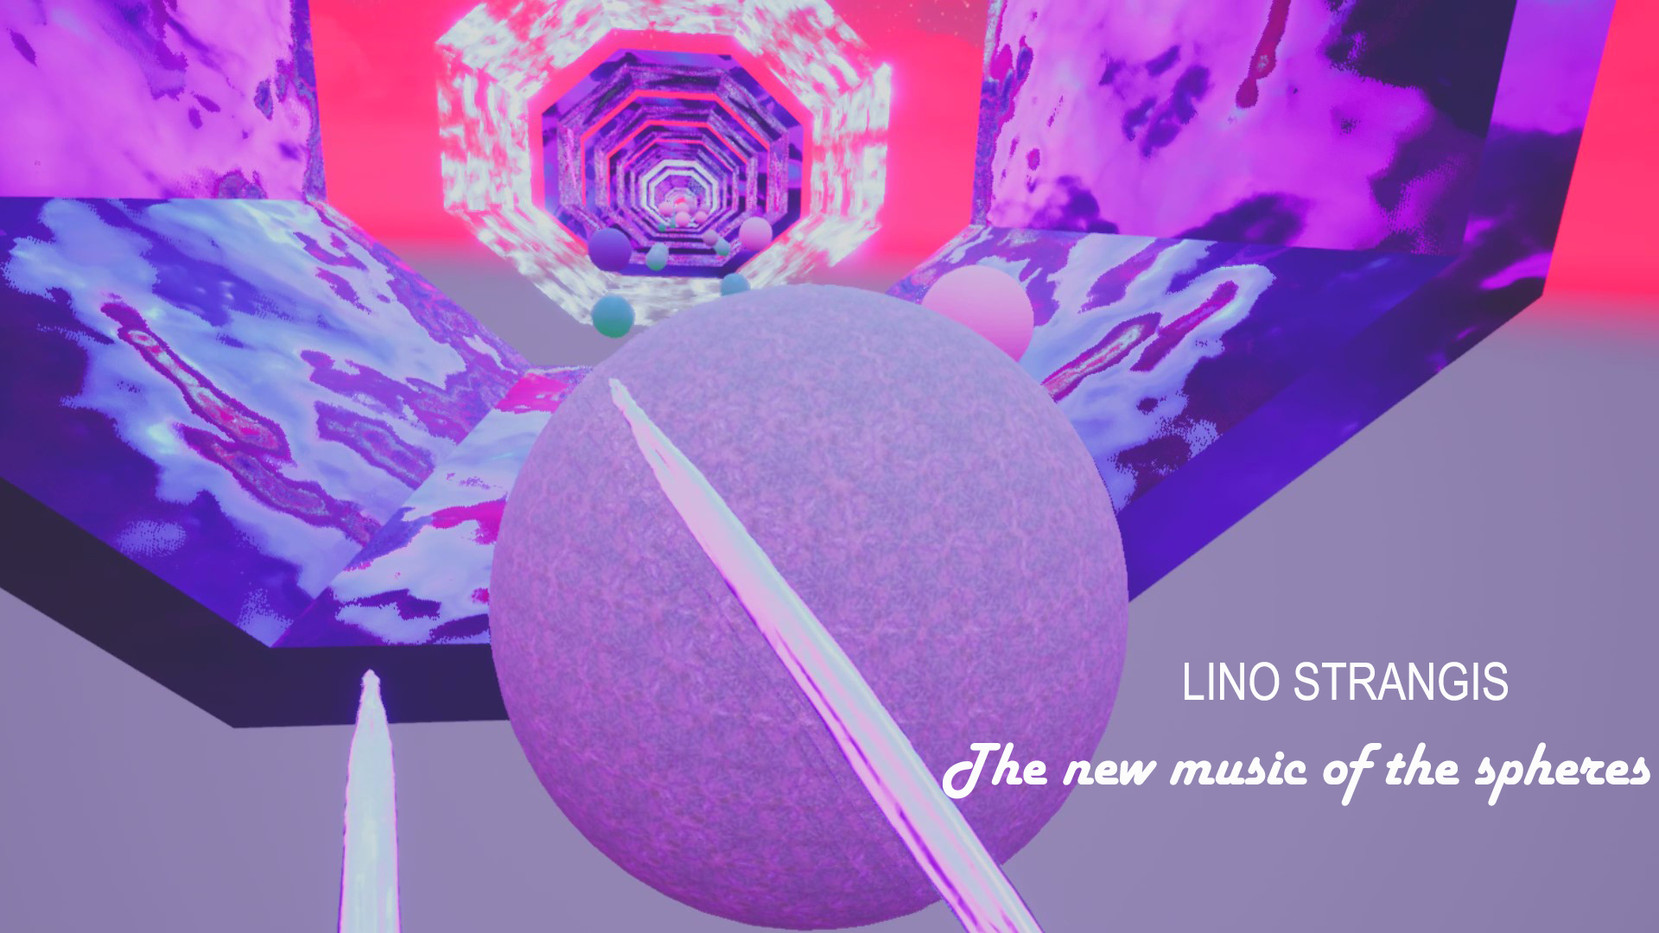 The new music of the spheres 1l.jpg